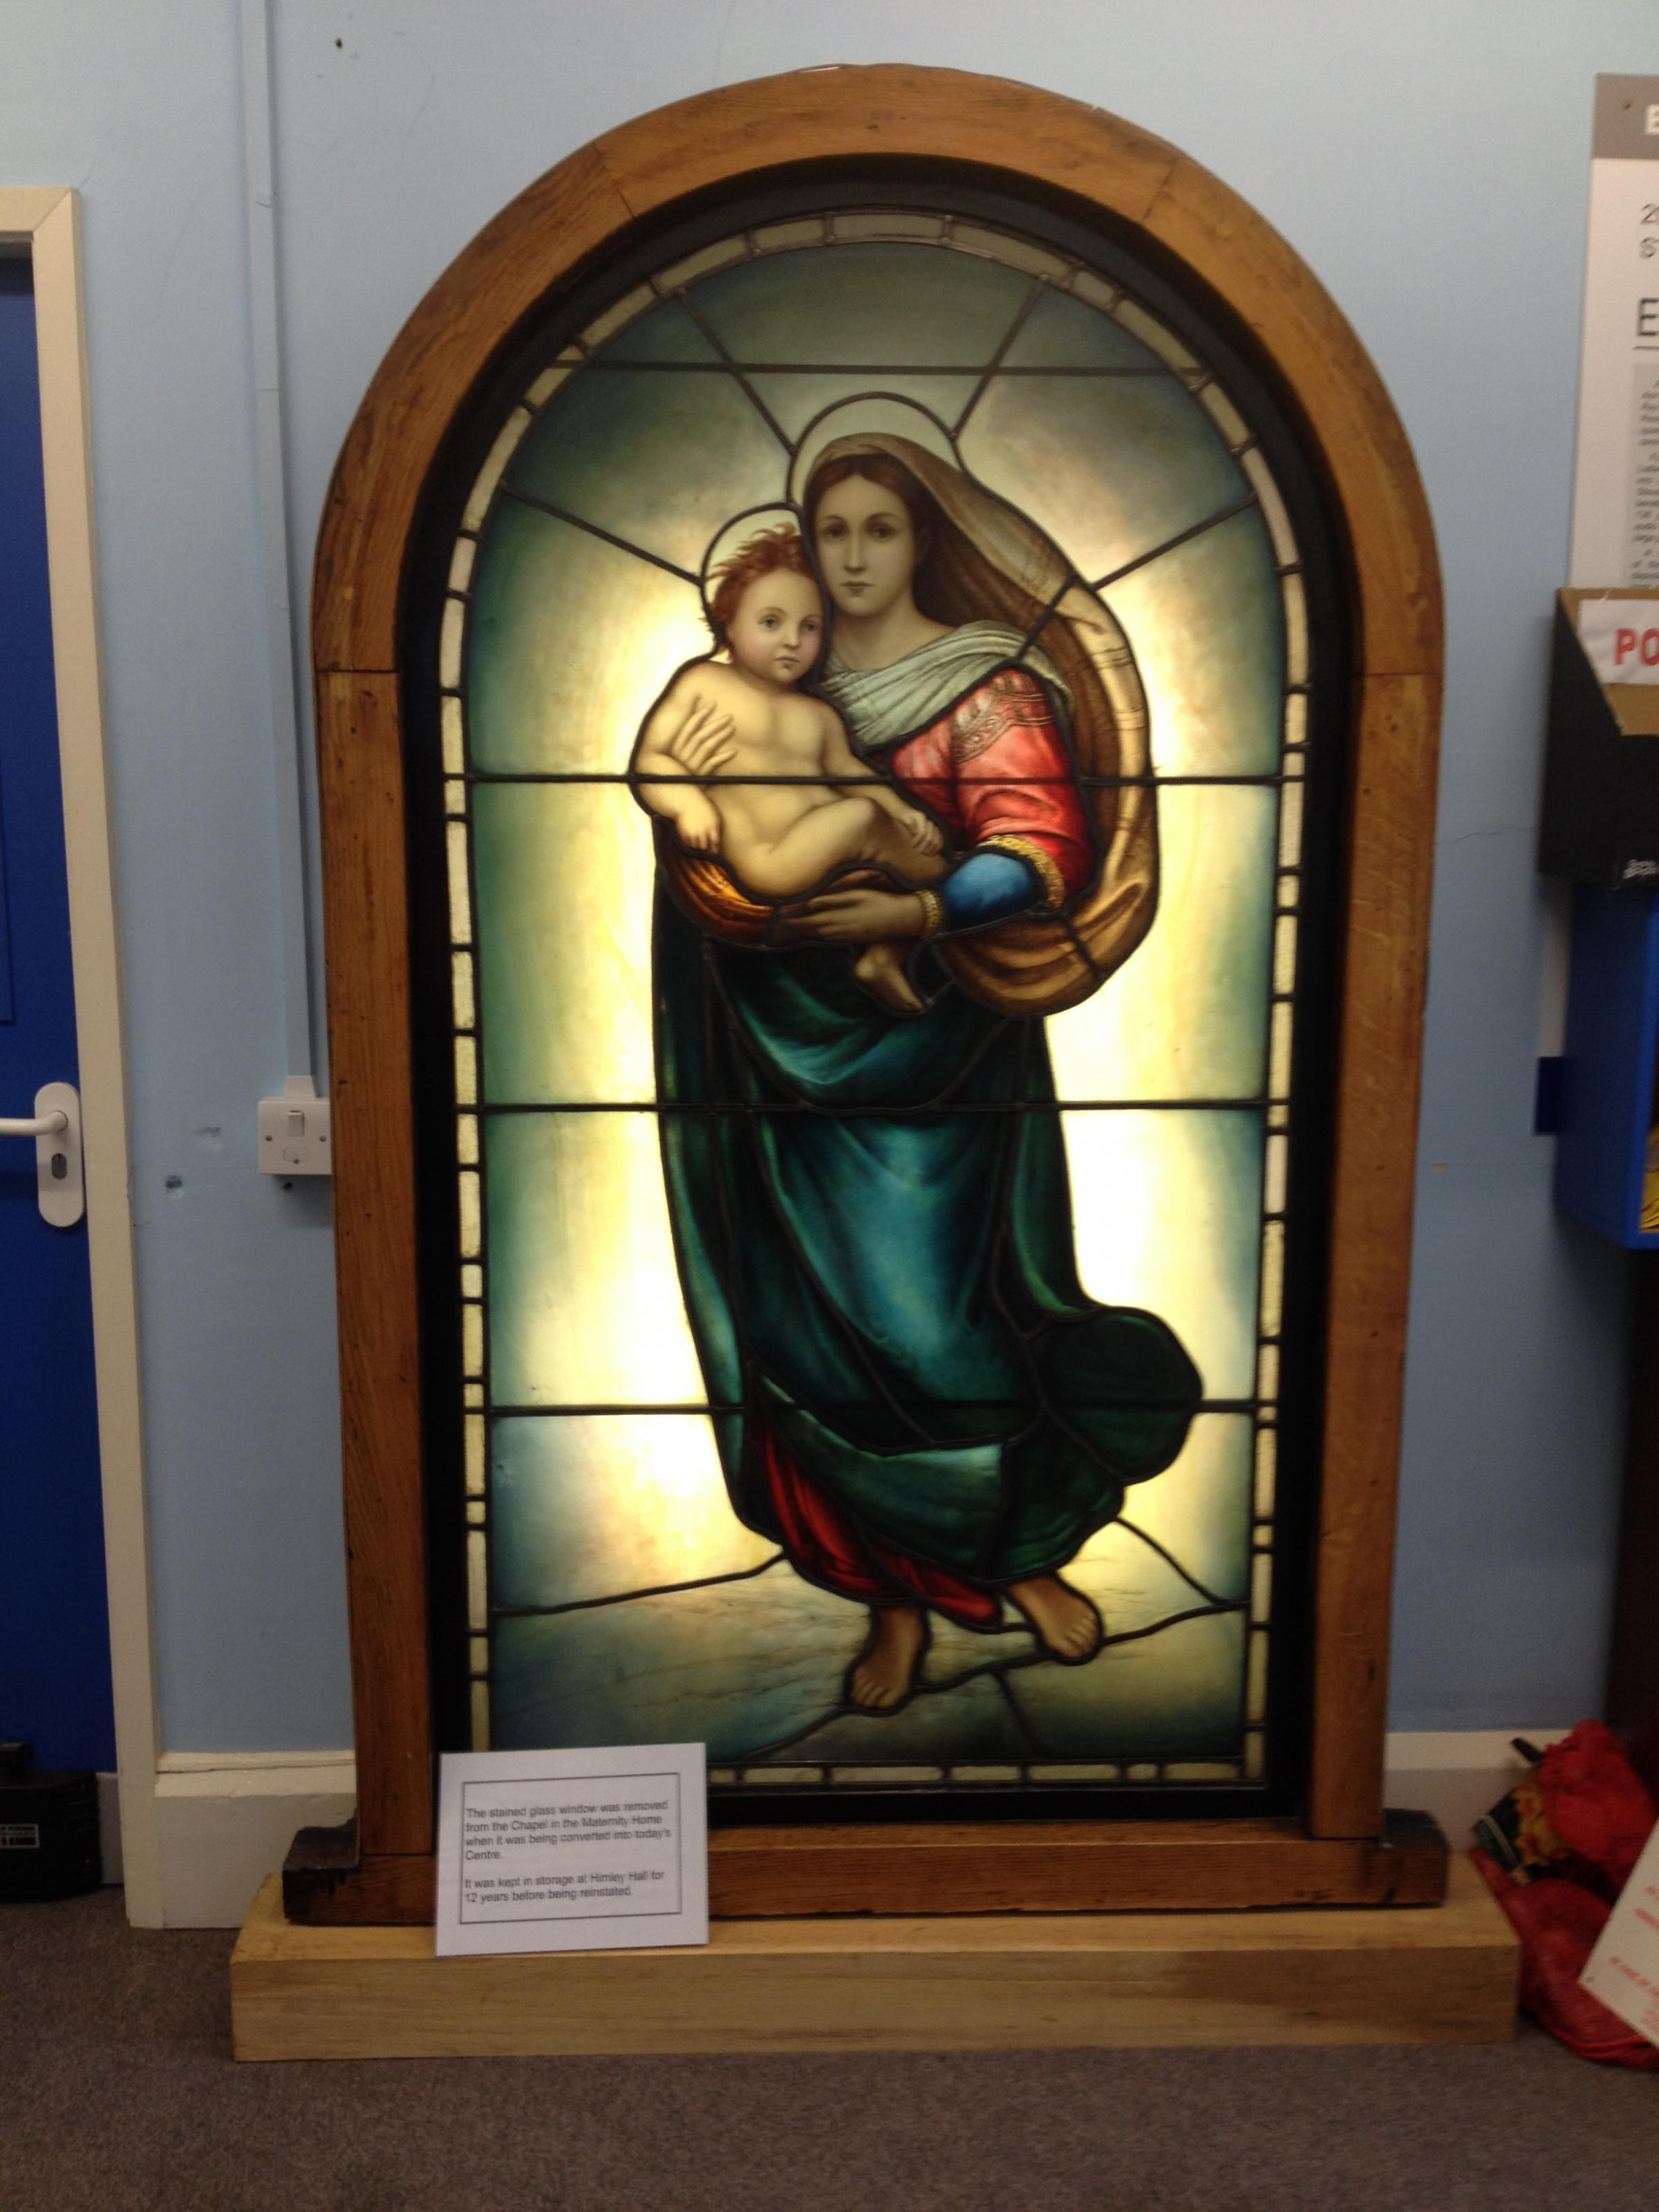 The stained glass window from the maternity home's chapel is now located at Pocklington Trust Resource Centre.